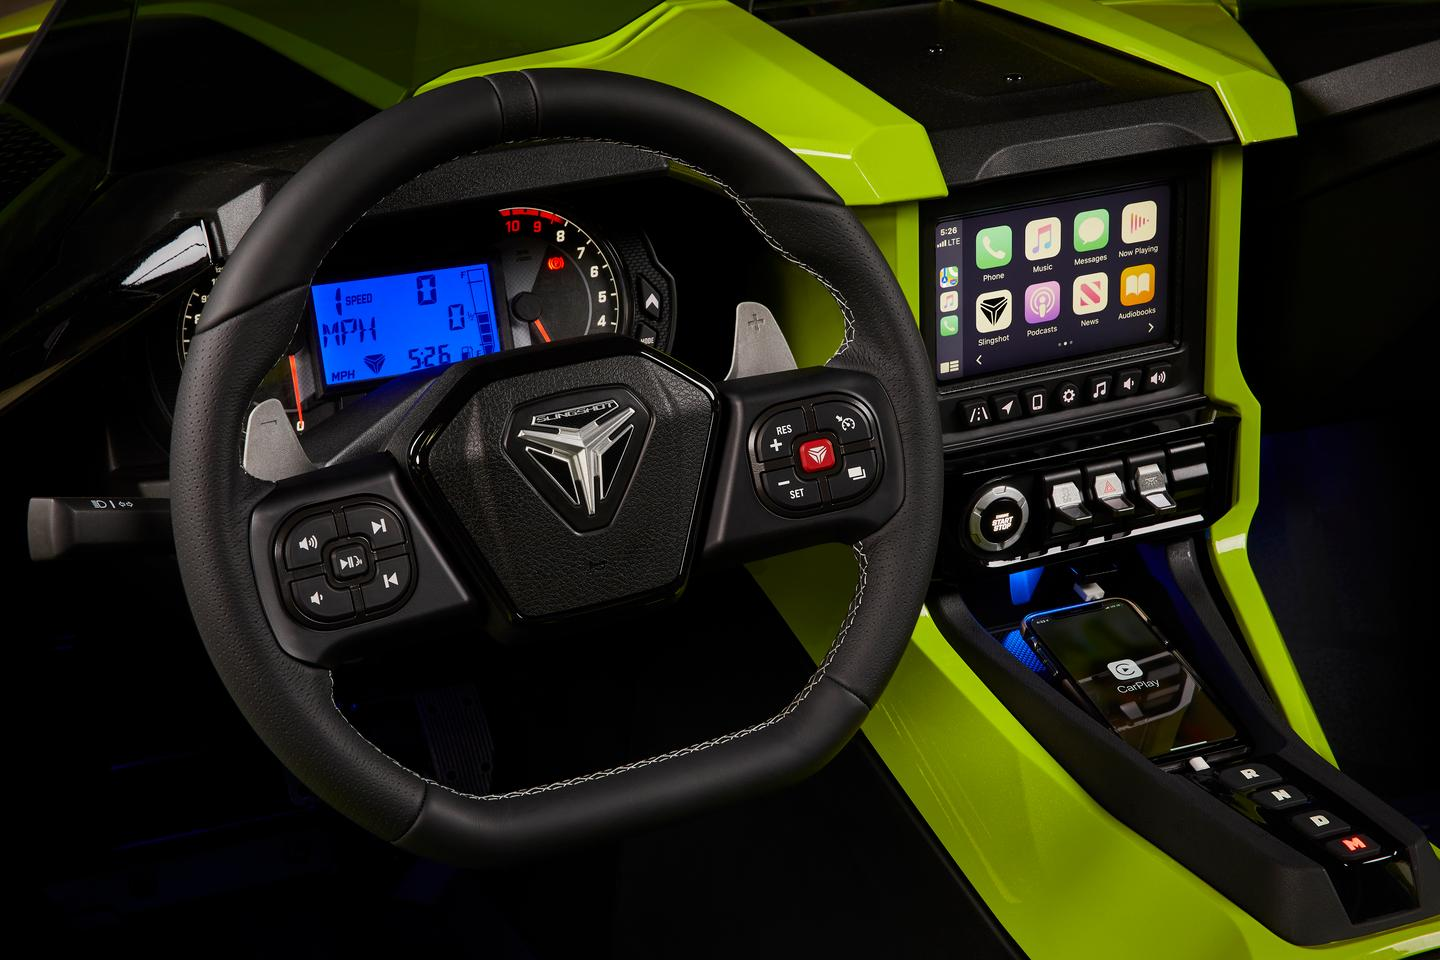 The 2021 Polaris Slingshot gets Apple CarPlay as an option, as well as a Rockford Fosgate stereo option